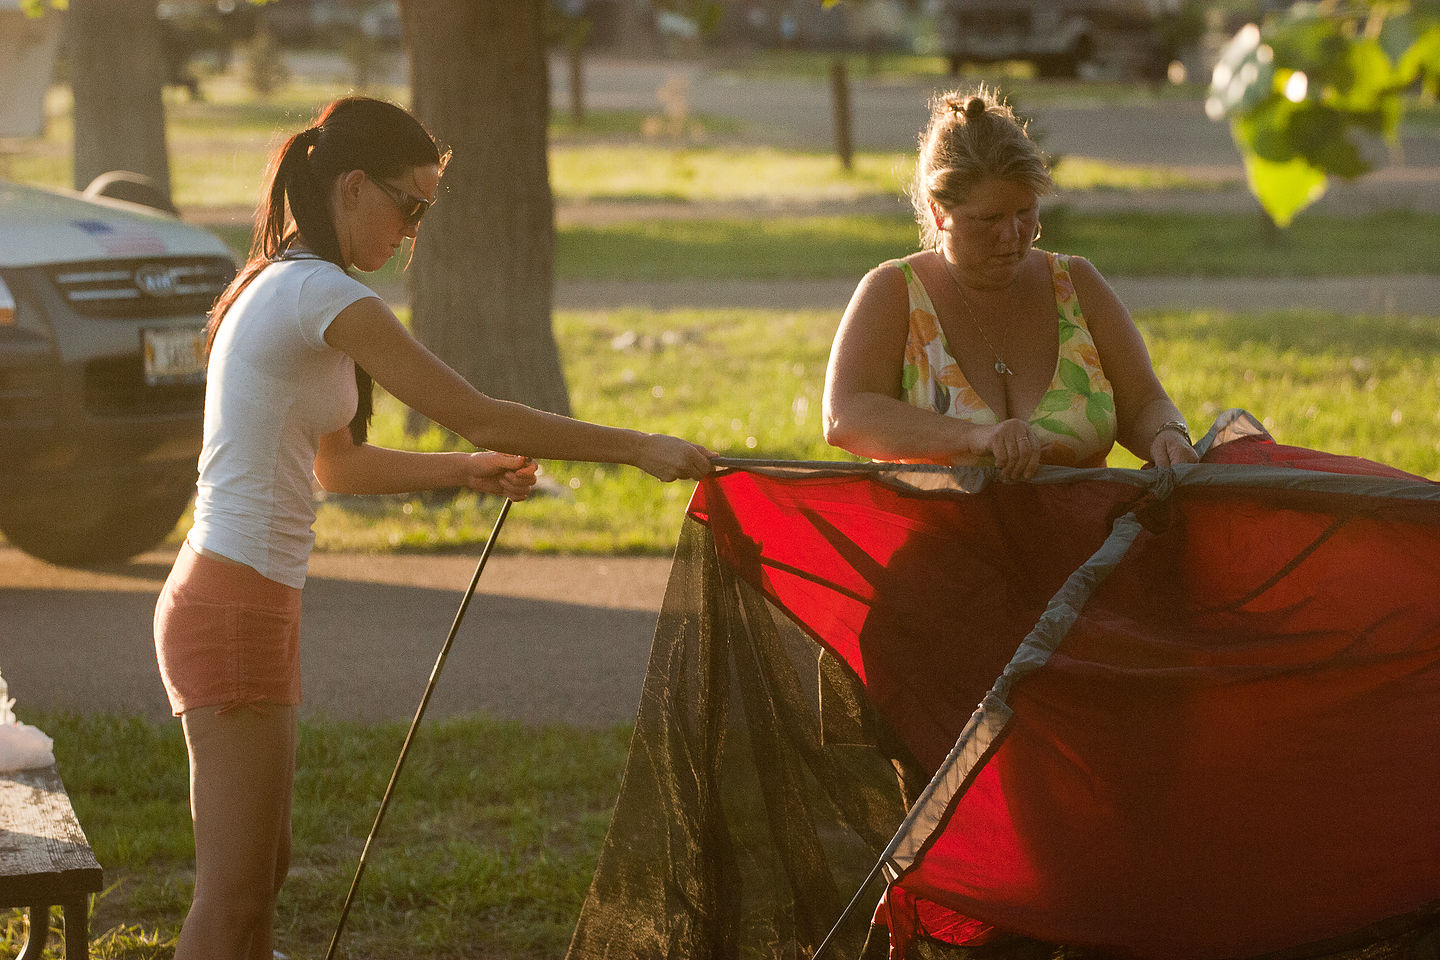 Mother & daughter tent pitching team